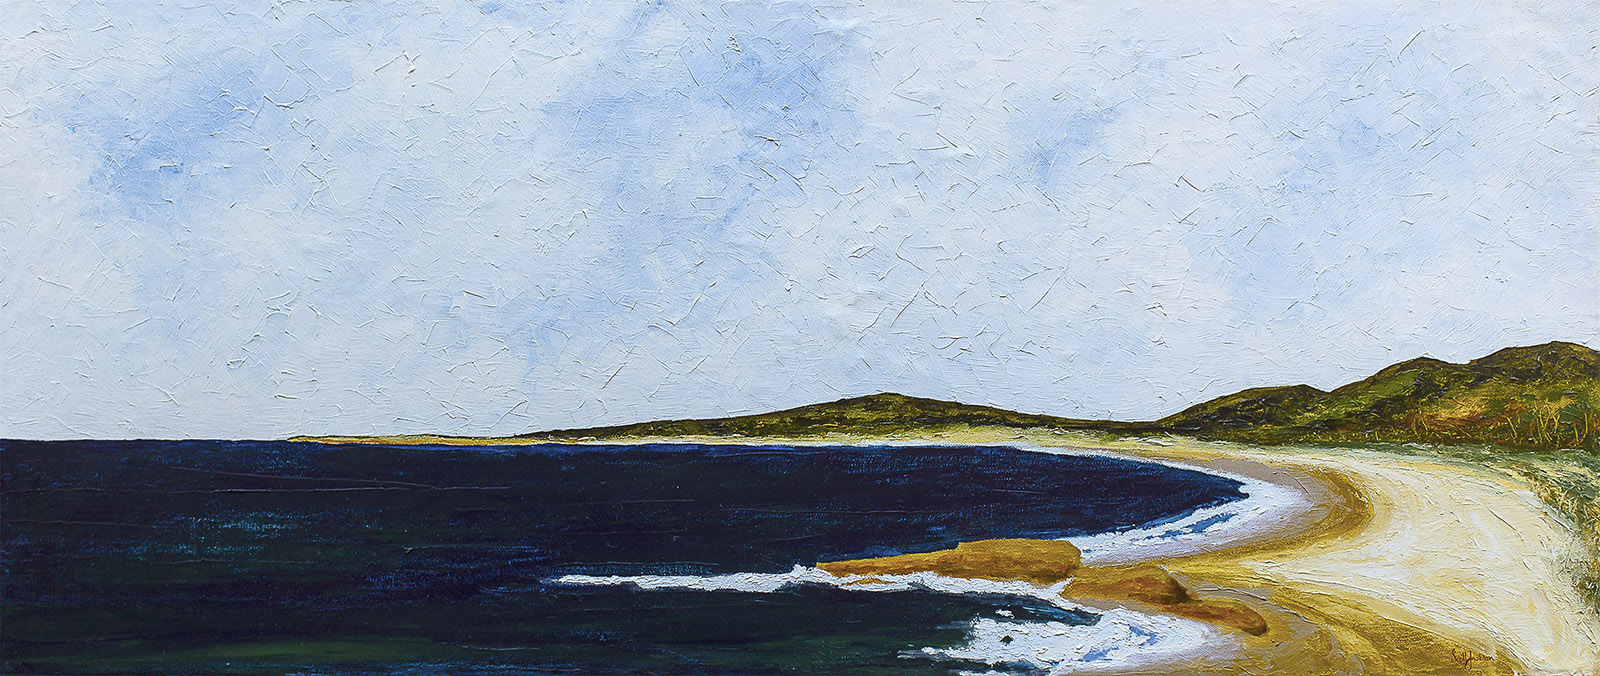 The stunning coastal area of South West rocks has Trial Bay. ...a beautiful beach ....This painting shows the well known Boulders at the town end of the beach and in the distance is the headland that has a camping ground and the historic Gaol......a great place for a dip ...you know yu want to just dive right in !!  Available to buy at my  Bluethumb online gallery  for $1800